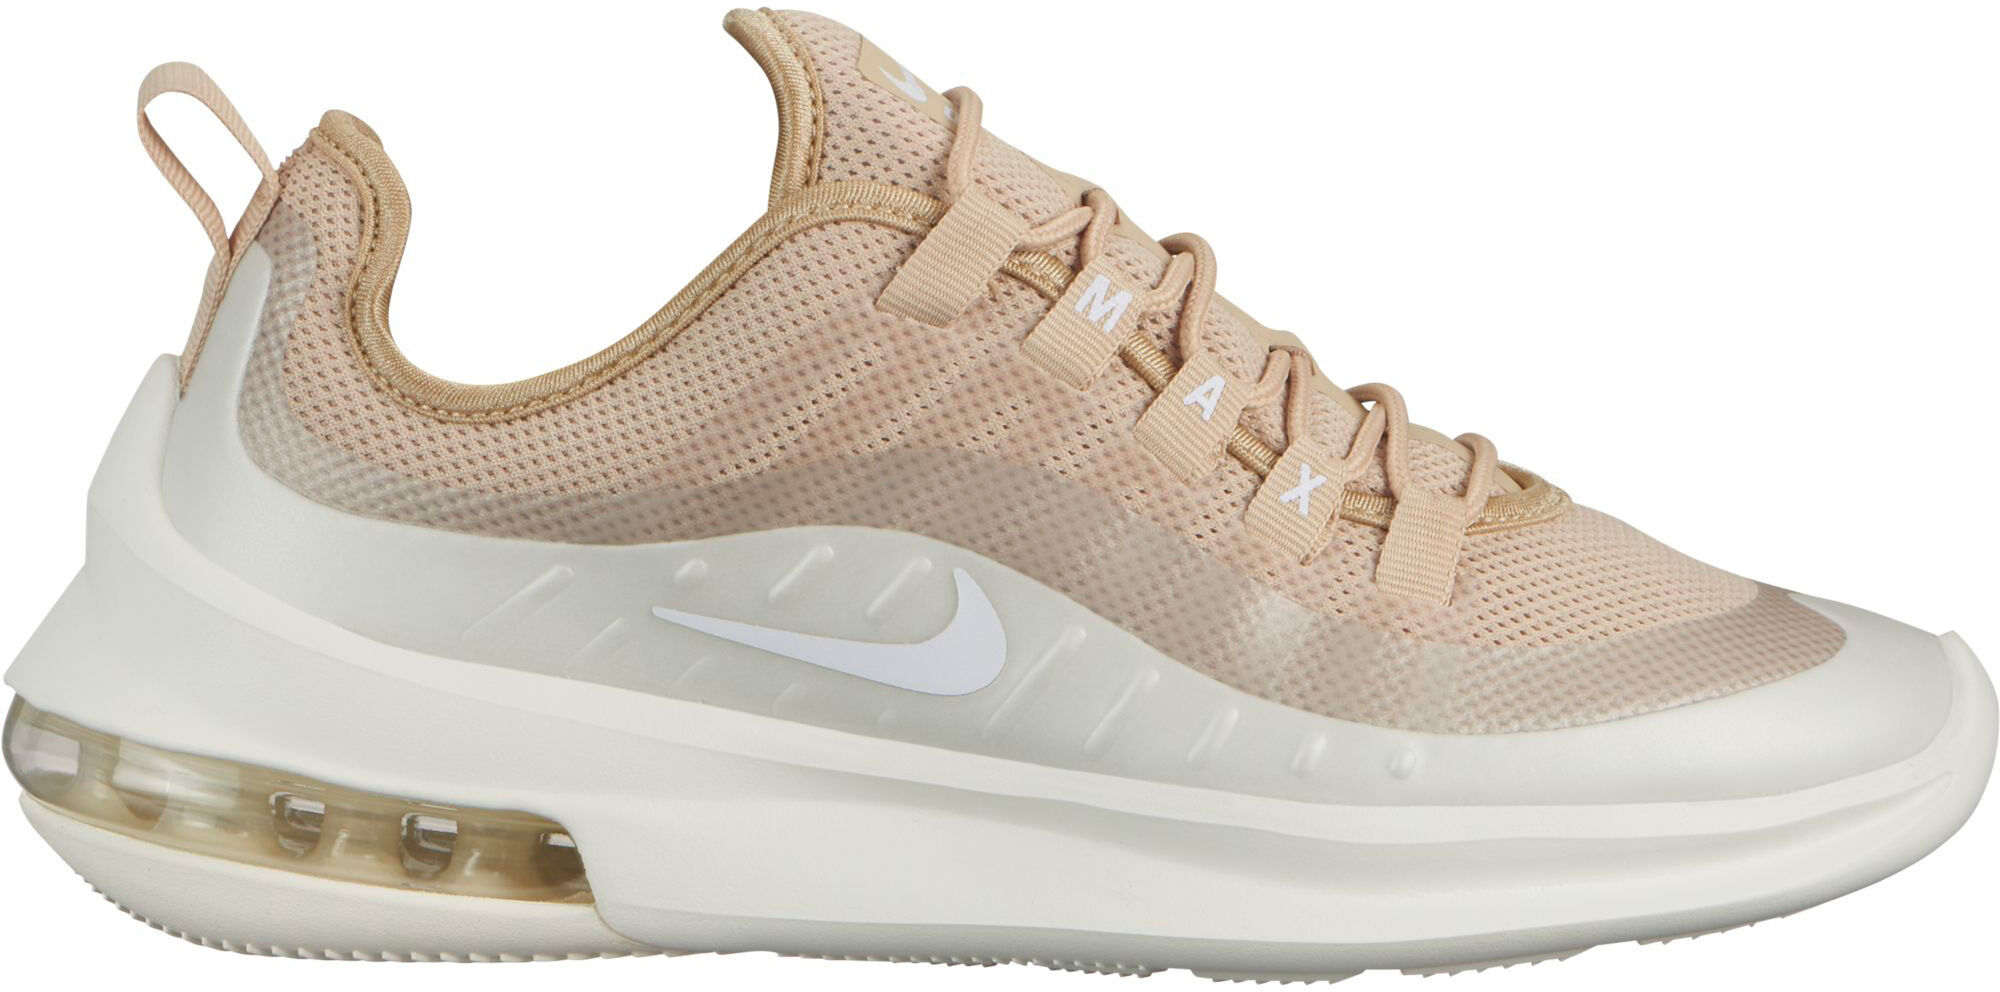 Outlet de sneakers Nike Air Max Axis Intersport mujer